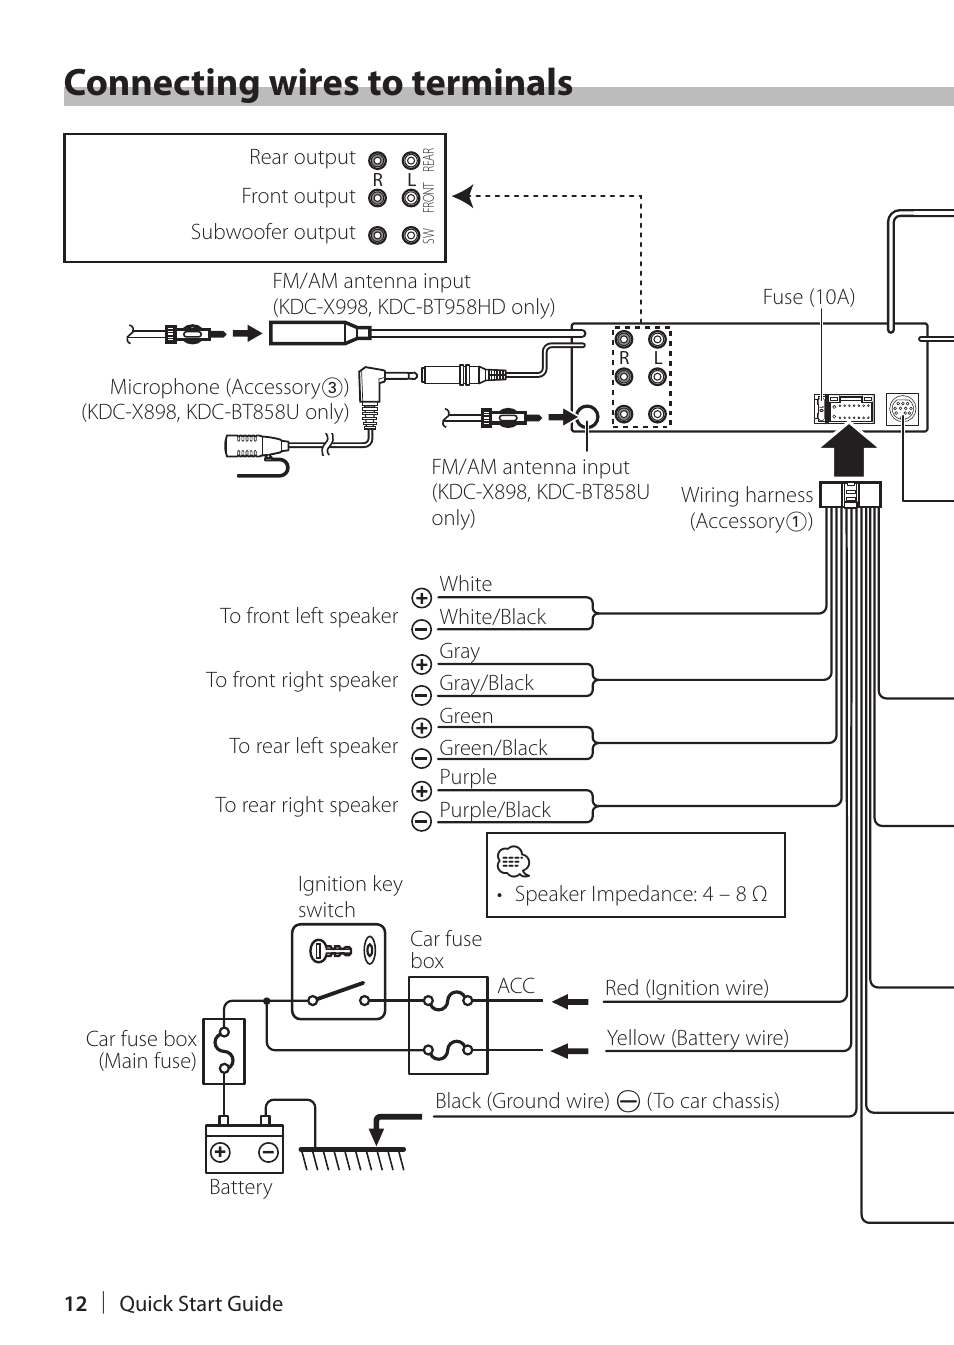 Kenwood Kdc Bt362u Wiring Harness Diagram - Wiring Diagram Rows on kenwood radio wiring colors, kenwood kdc 138 radio, kenwood kdc-152 wiring-diagram, kenwood stereo wiring, kenwood car stereo product, kenwood kdc 138 16 pin, kenwood ddx418 wiring harness diagram, kenwood 16 pin wiring harness diagram, kenwood kdc 138 wire harness, kenwood kdc 138 installation, kenwood cd receiver wire diagram, car stereo wiring diagram,